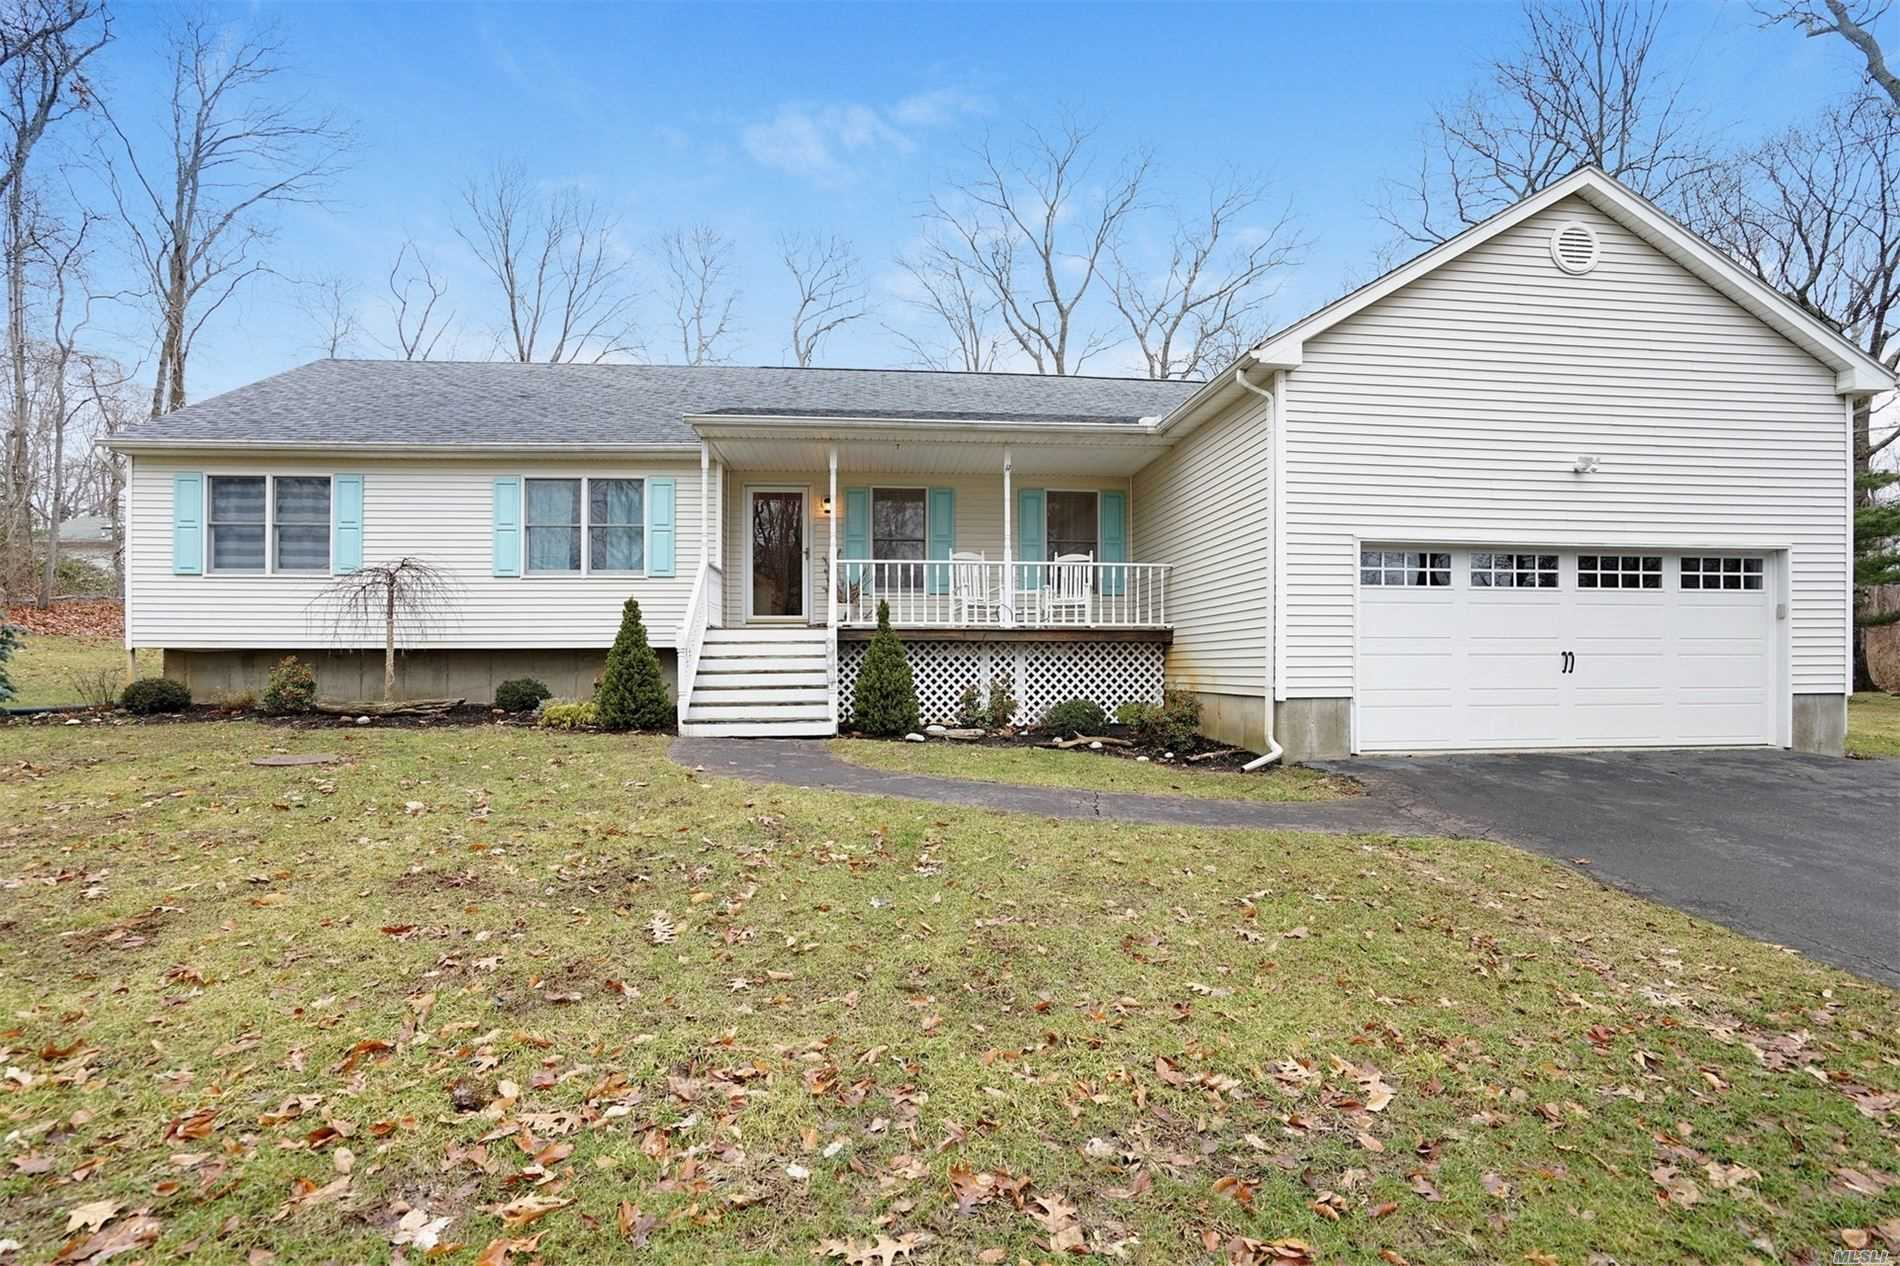 340 Westwood Ln - Greenport, New York